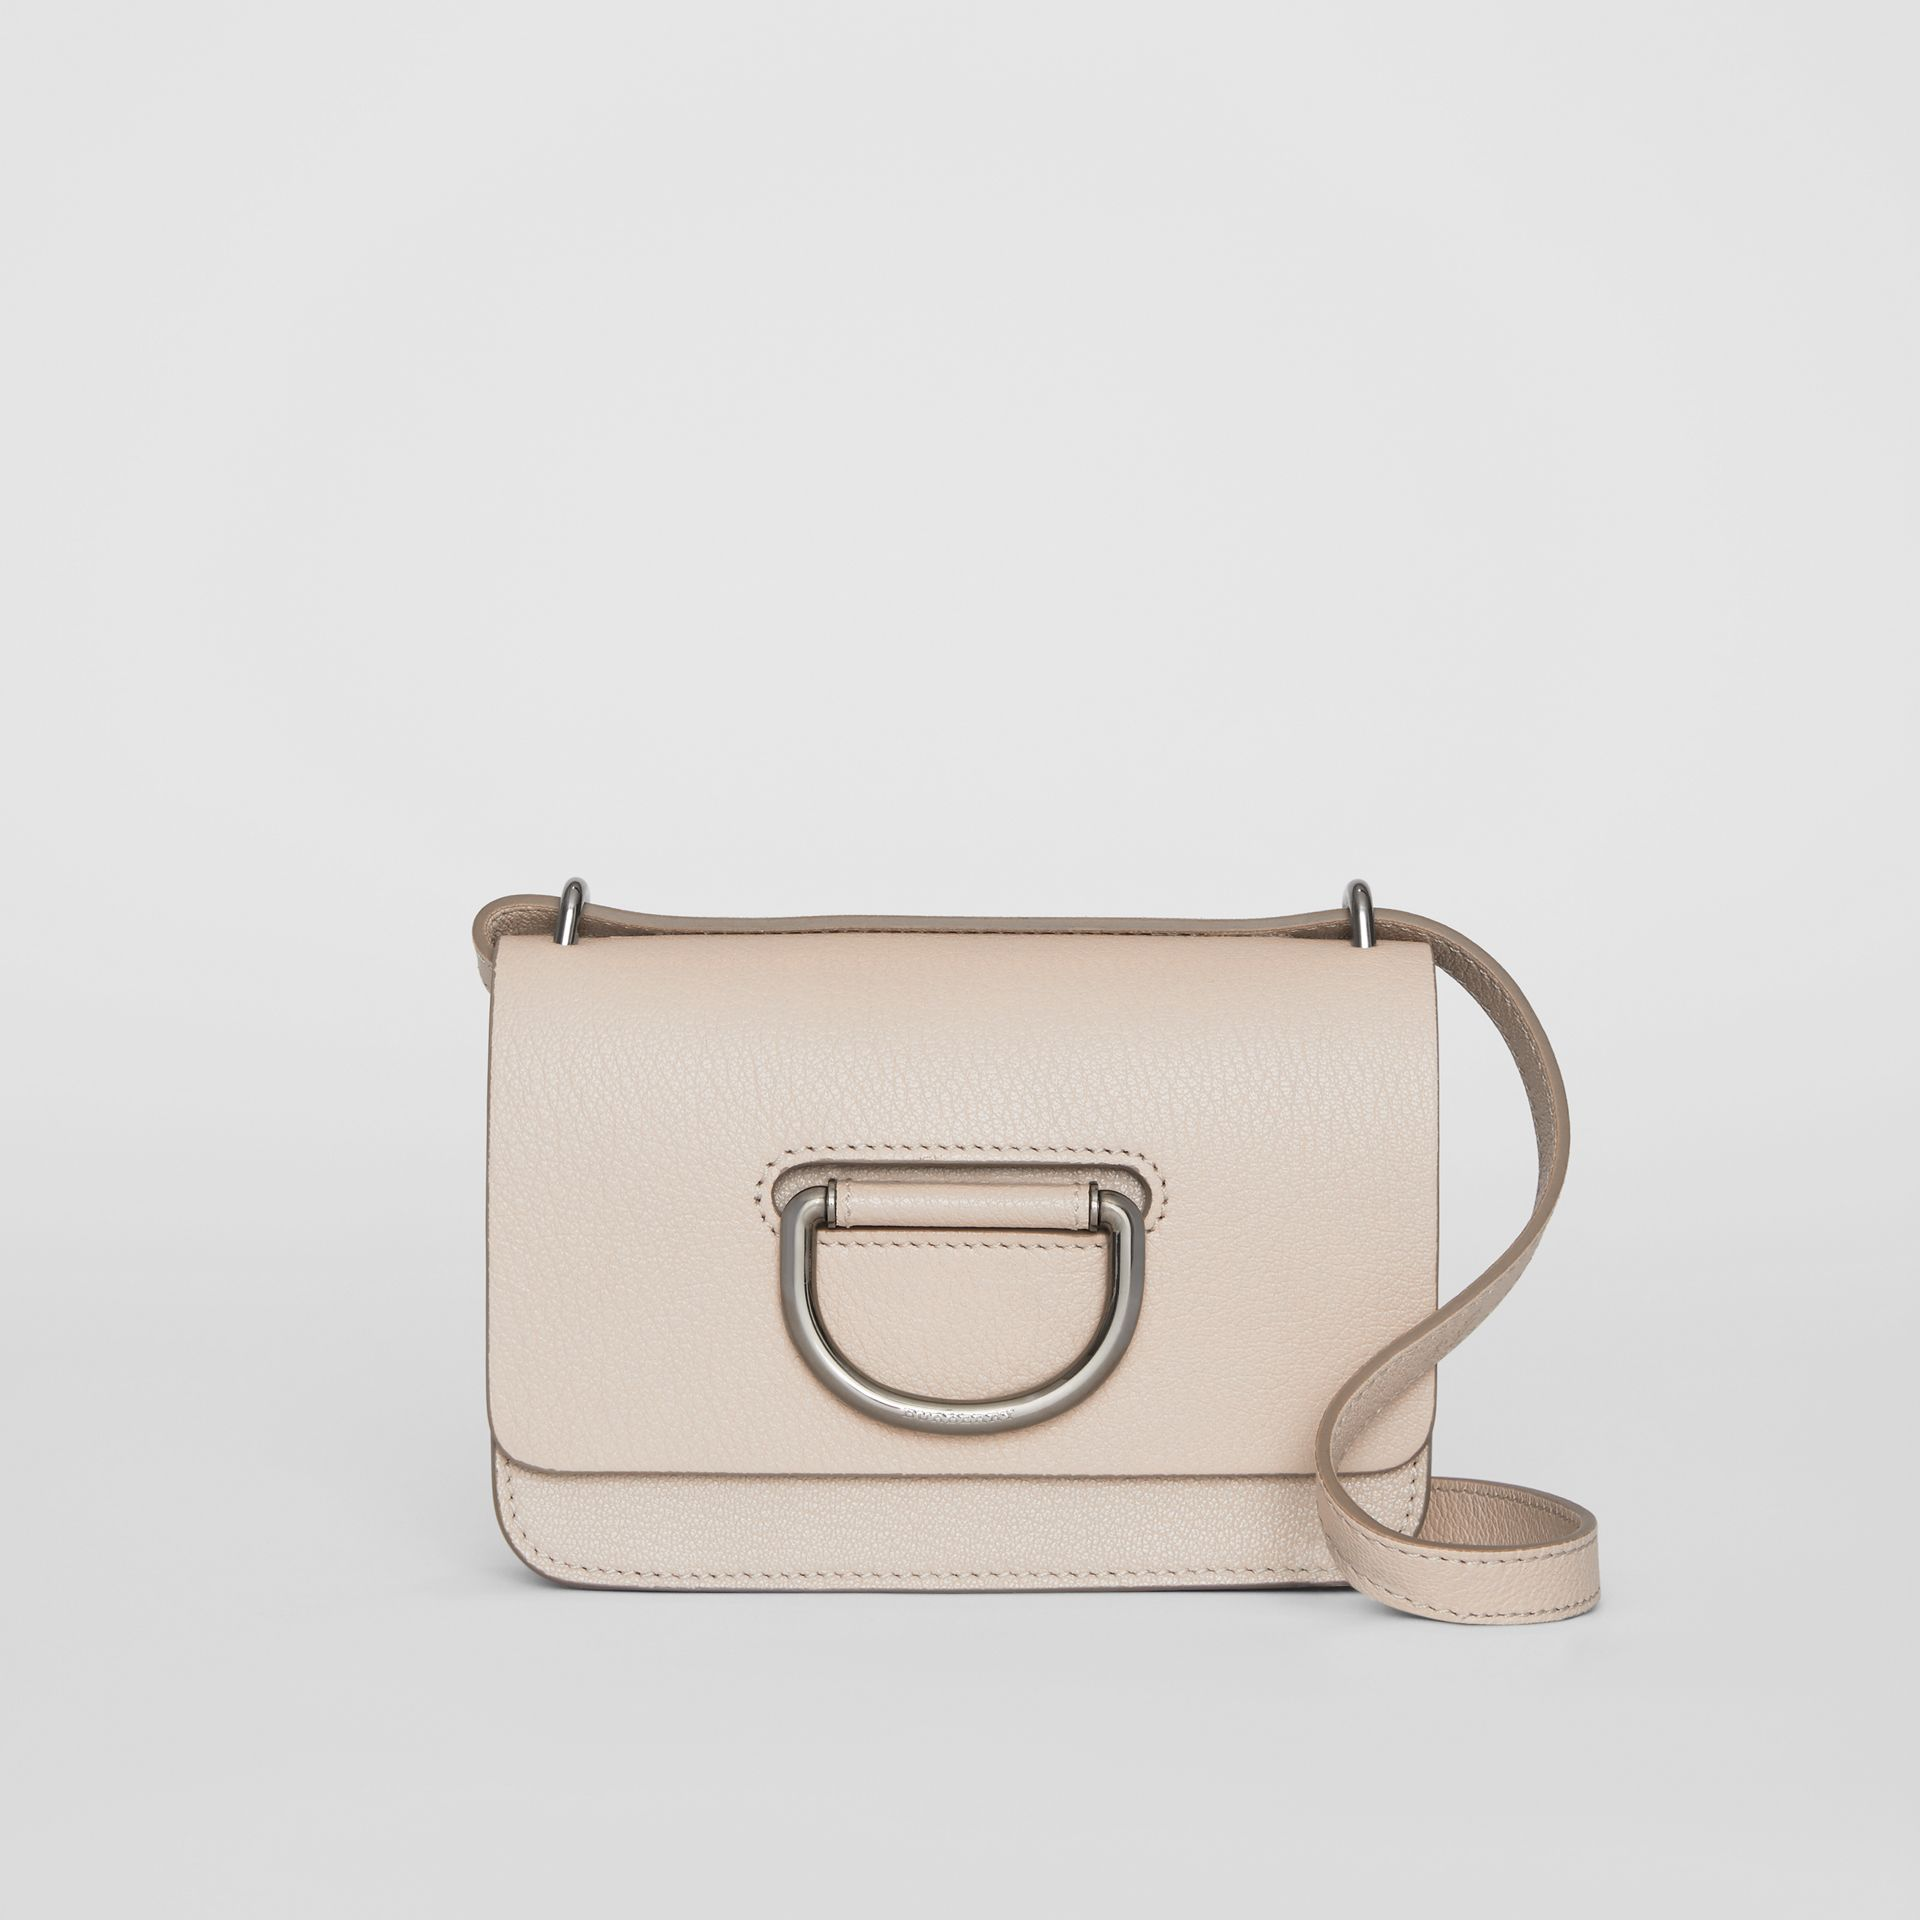 Mini sac The D-ring en cuir (Stone) - Femme | Burberry - photo de la galerie 0